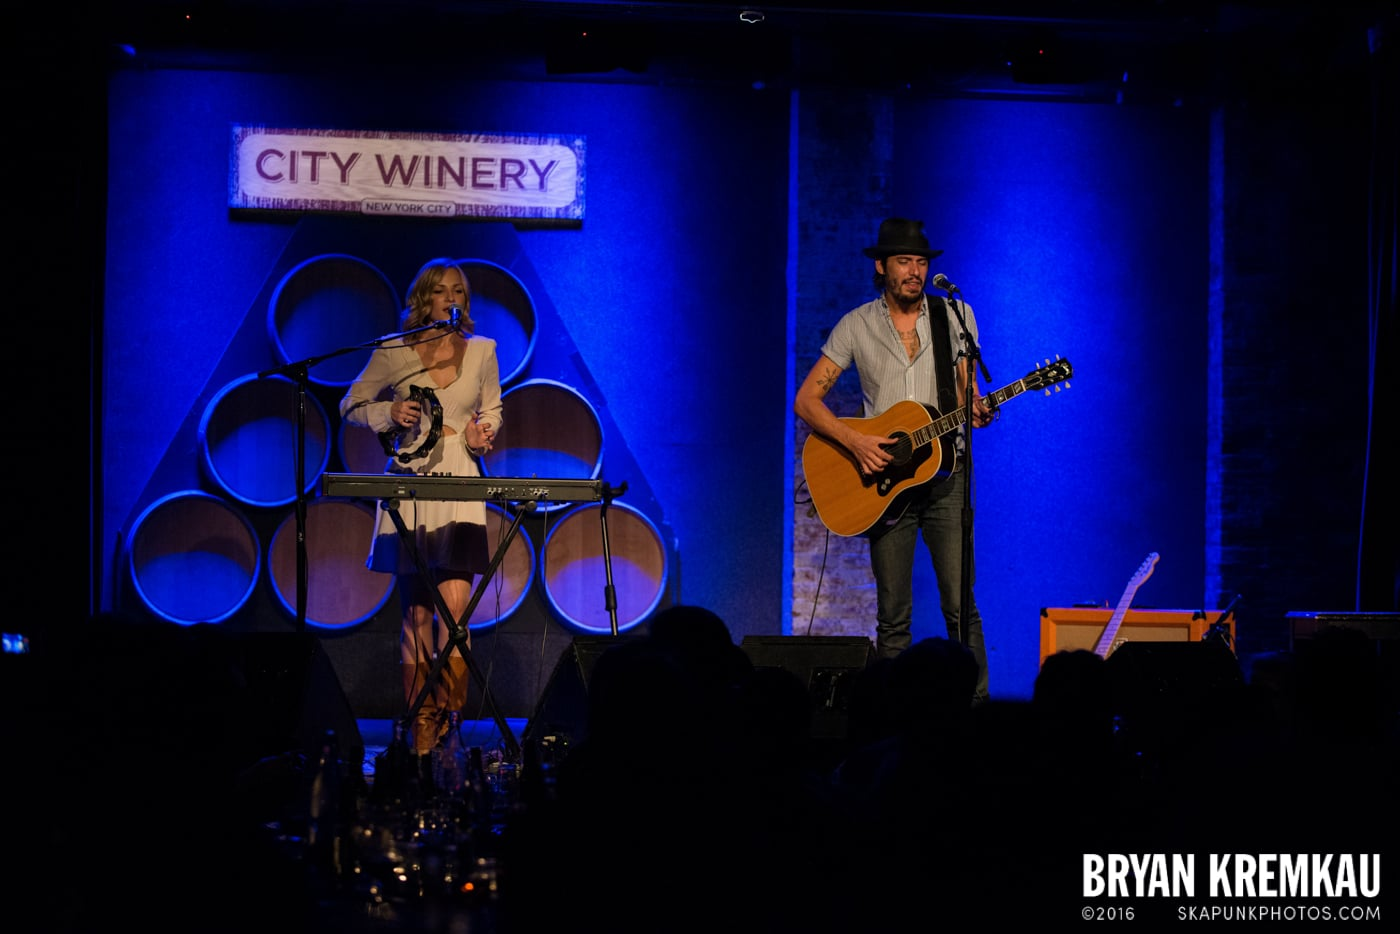 Cory Chisel and The Wandering Sons @ City Winery, NYC - 6.26.13 (12)